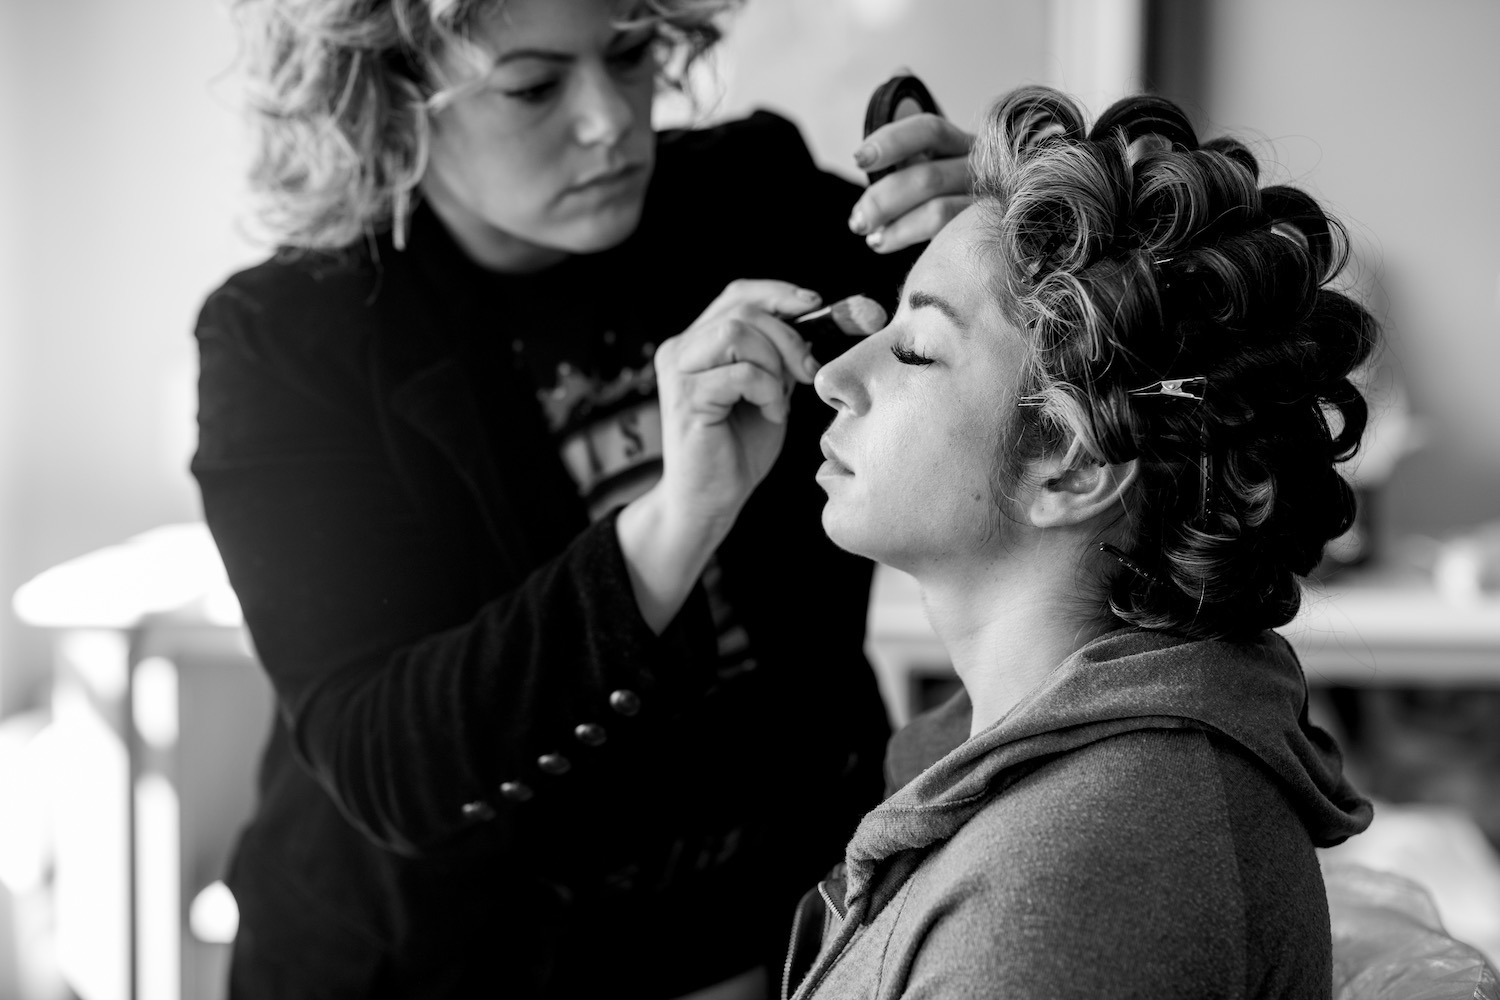 Lia Zangari, owner of Bliss Salon, set Aubrey's hair for her masterful down-style while Justine artistically prepares our model for the camera.